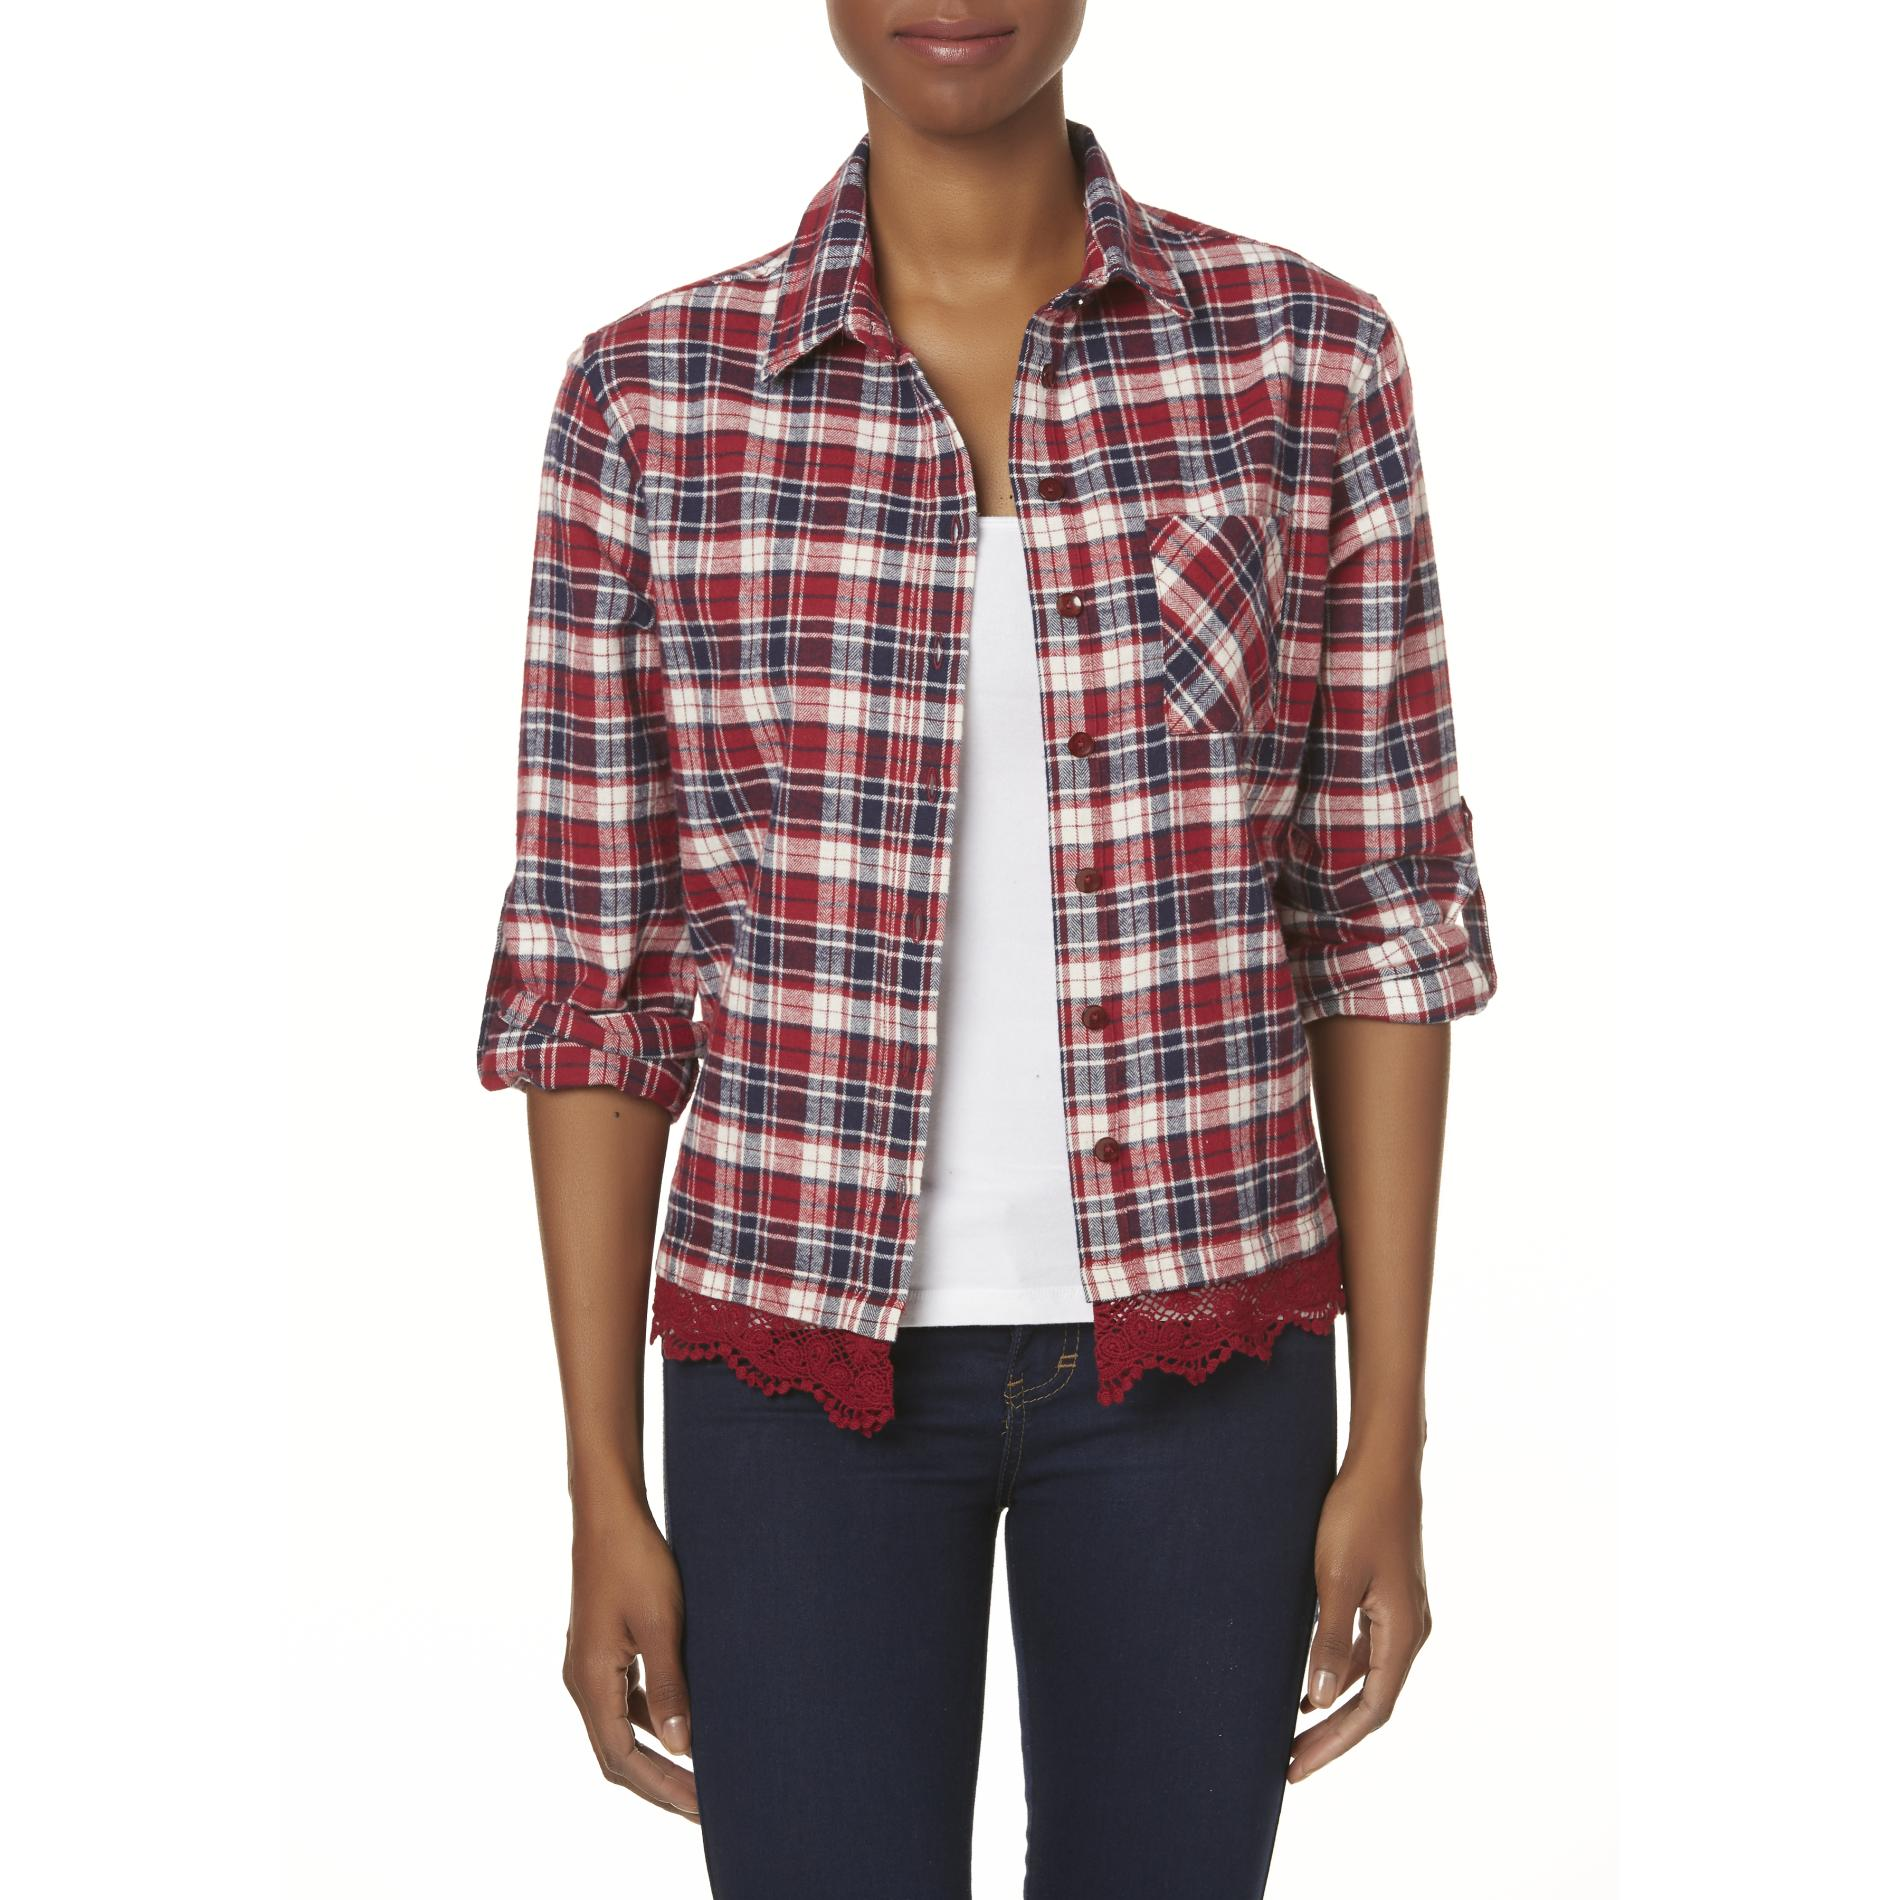 Women' Flannel Shirt - Plaid